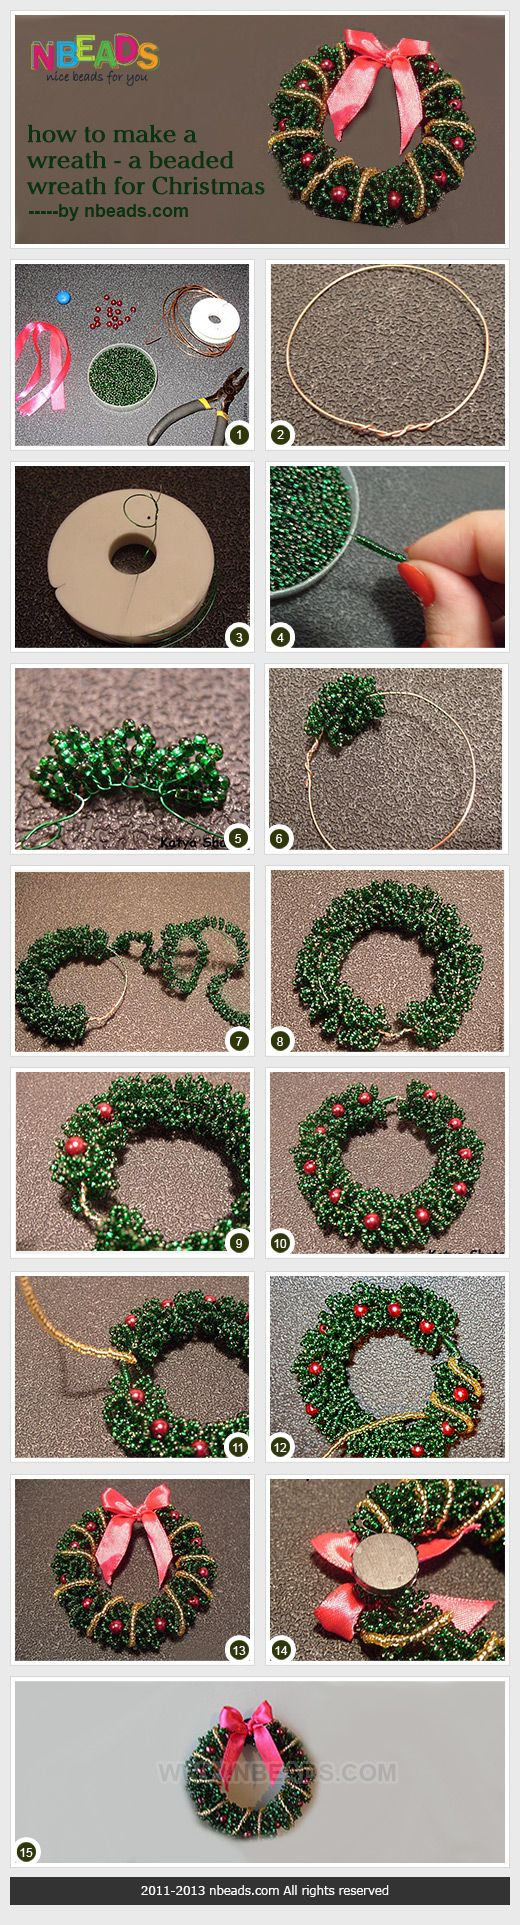 Beaded Wreath for Christmas • How to make : see images